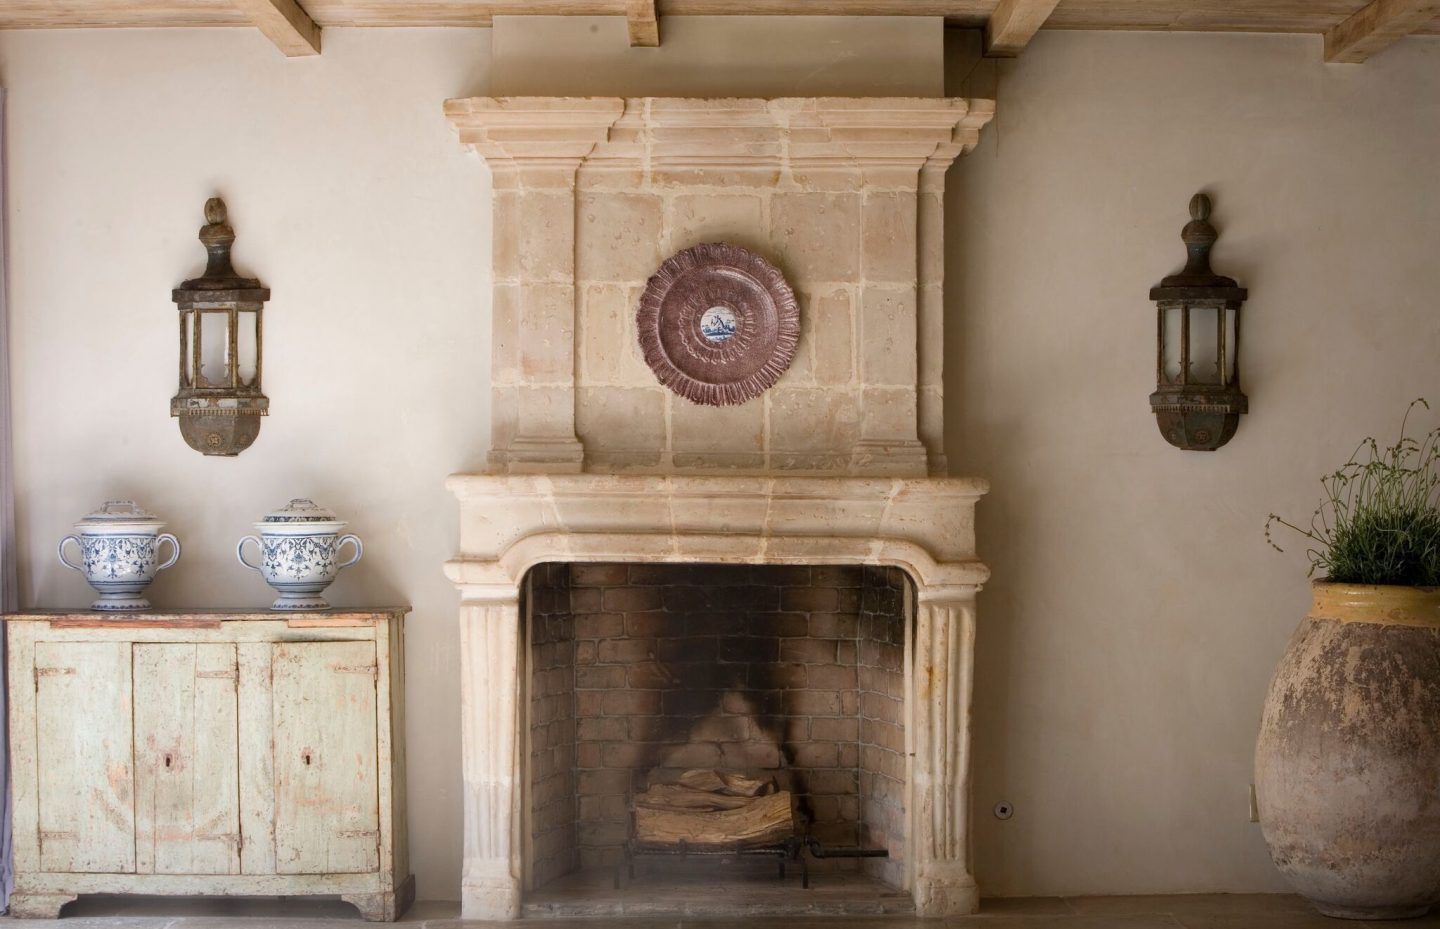 Chateau Domingue Timeless European Elegance and French farmhouse style converge in this house tour of founder Ruth Gay's home on Hello Lovely. Reclaimed stone, antique doors and mantels, and one of a kind architectural elements. #housetour #frenchcountry #frenchfarmhouse #europeanfarmhouse #chateaudomingue #rusticdecor #pamelapierce #elegantdecor #diningroom #fireplace